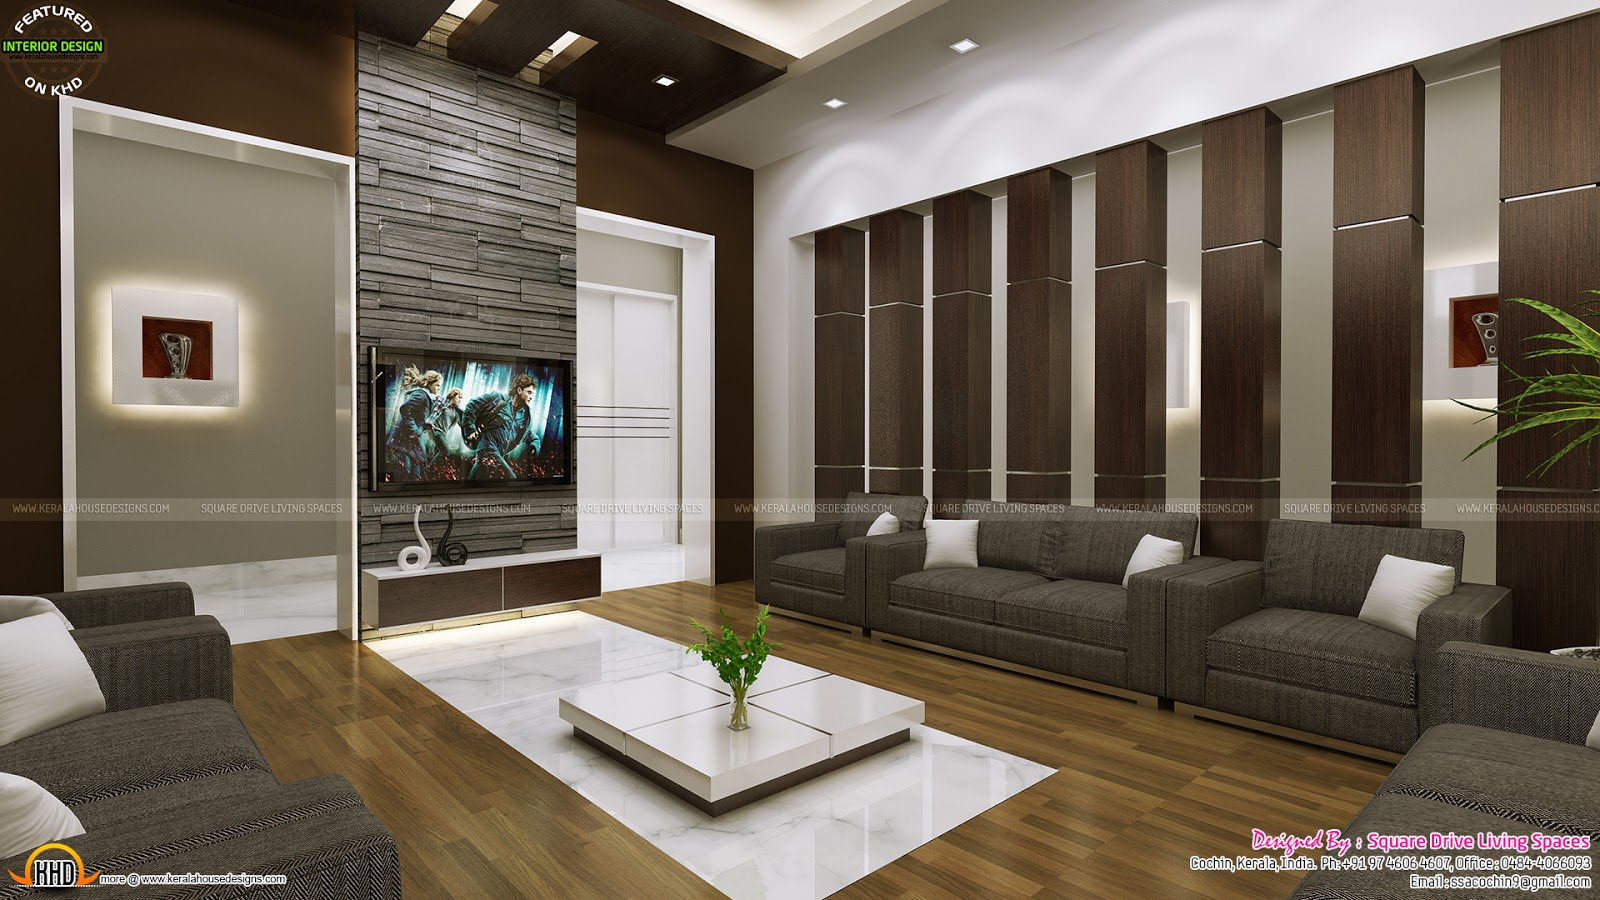 Attractive home interior ideas kerala home design and - Design interior ...